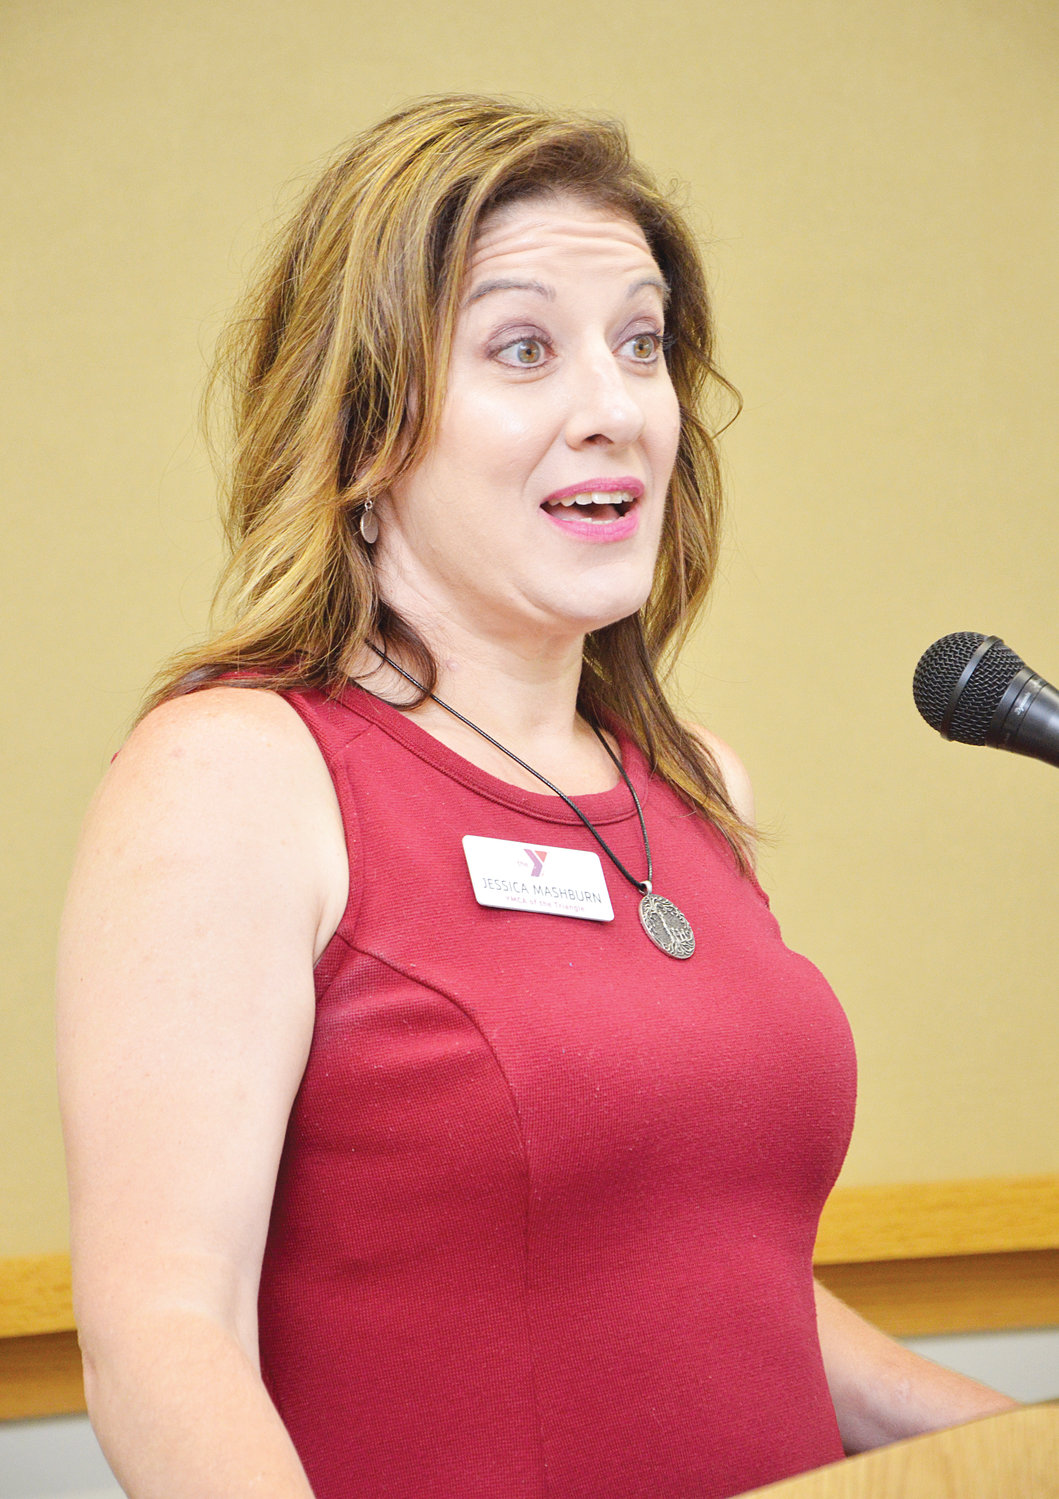 Guest speaker for the Leadership Chatham luncheon was Jessica Mashburn, from the YMCA of the Triangle. Mashburn's message stressed innovation, going beyond the known, and learning from failure.